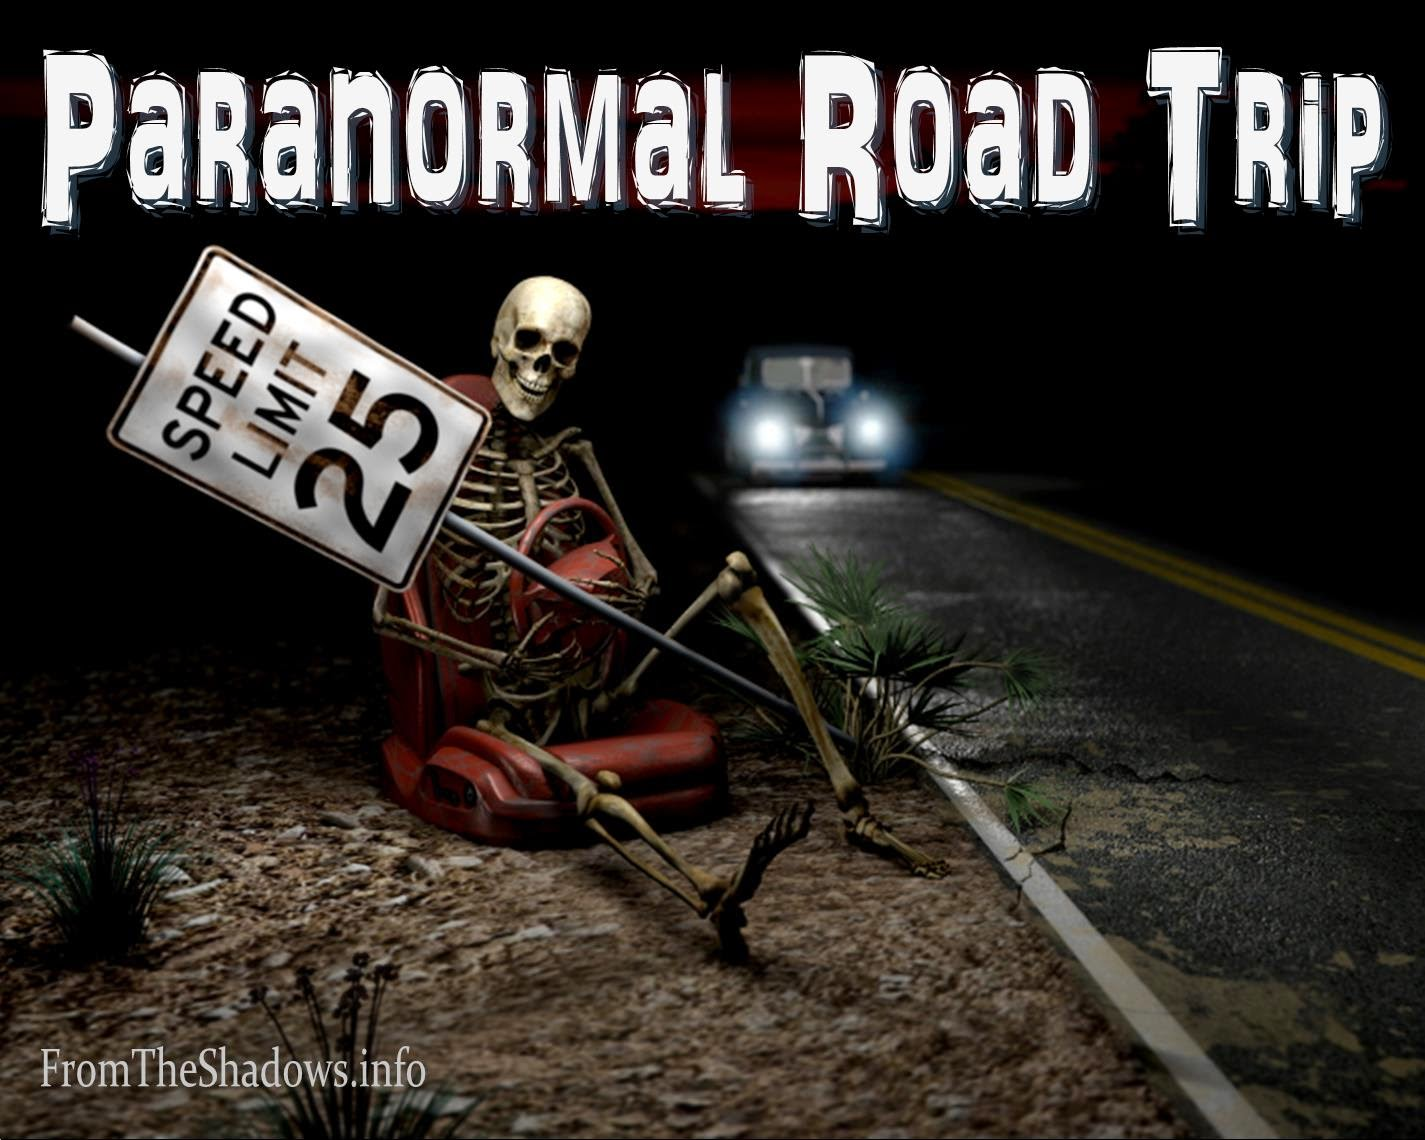 Paranormal Road Trip: Destination Barcelona with T. Frohock